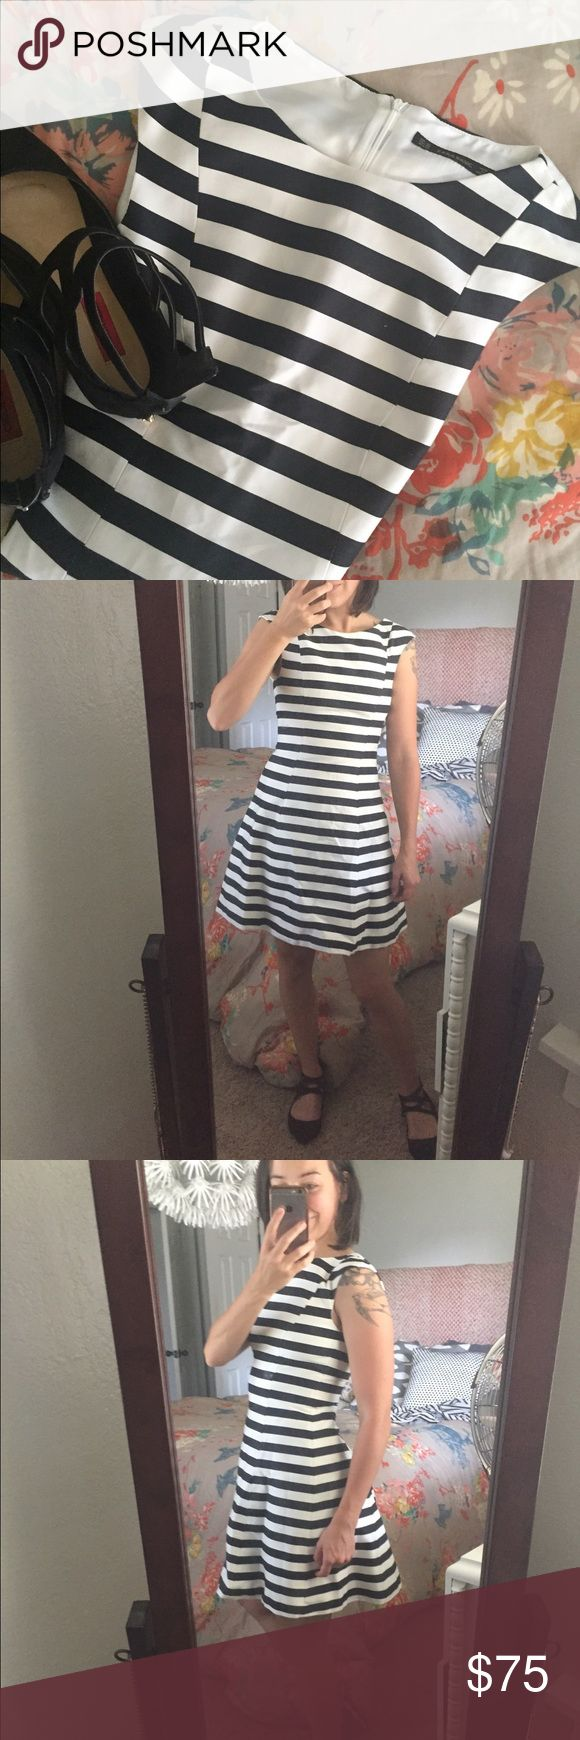 Zara Basic Striped Cocktail Dress Navy and white striped cocktail dress with cap sleeves. I'm not sure what type of fabric this is. It feels like a silk blend. I fell in love with dress because of the fit but unfortunately it's too small for me as I wear a small and this an xs. Zara Dresses